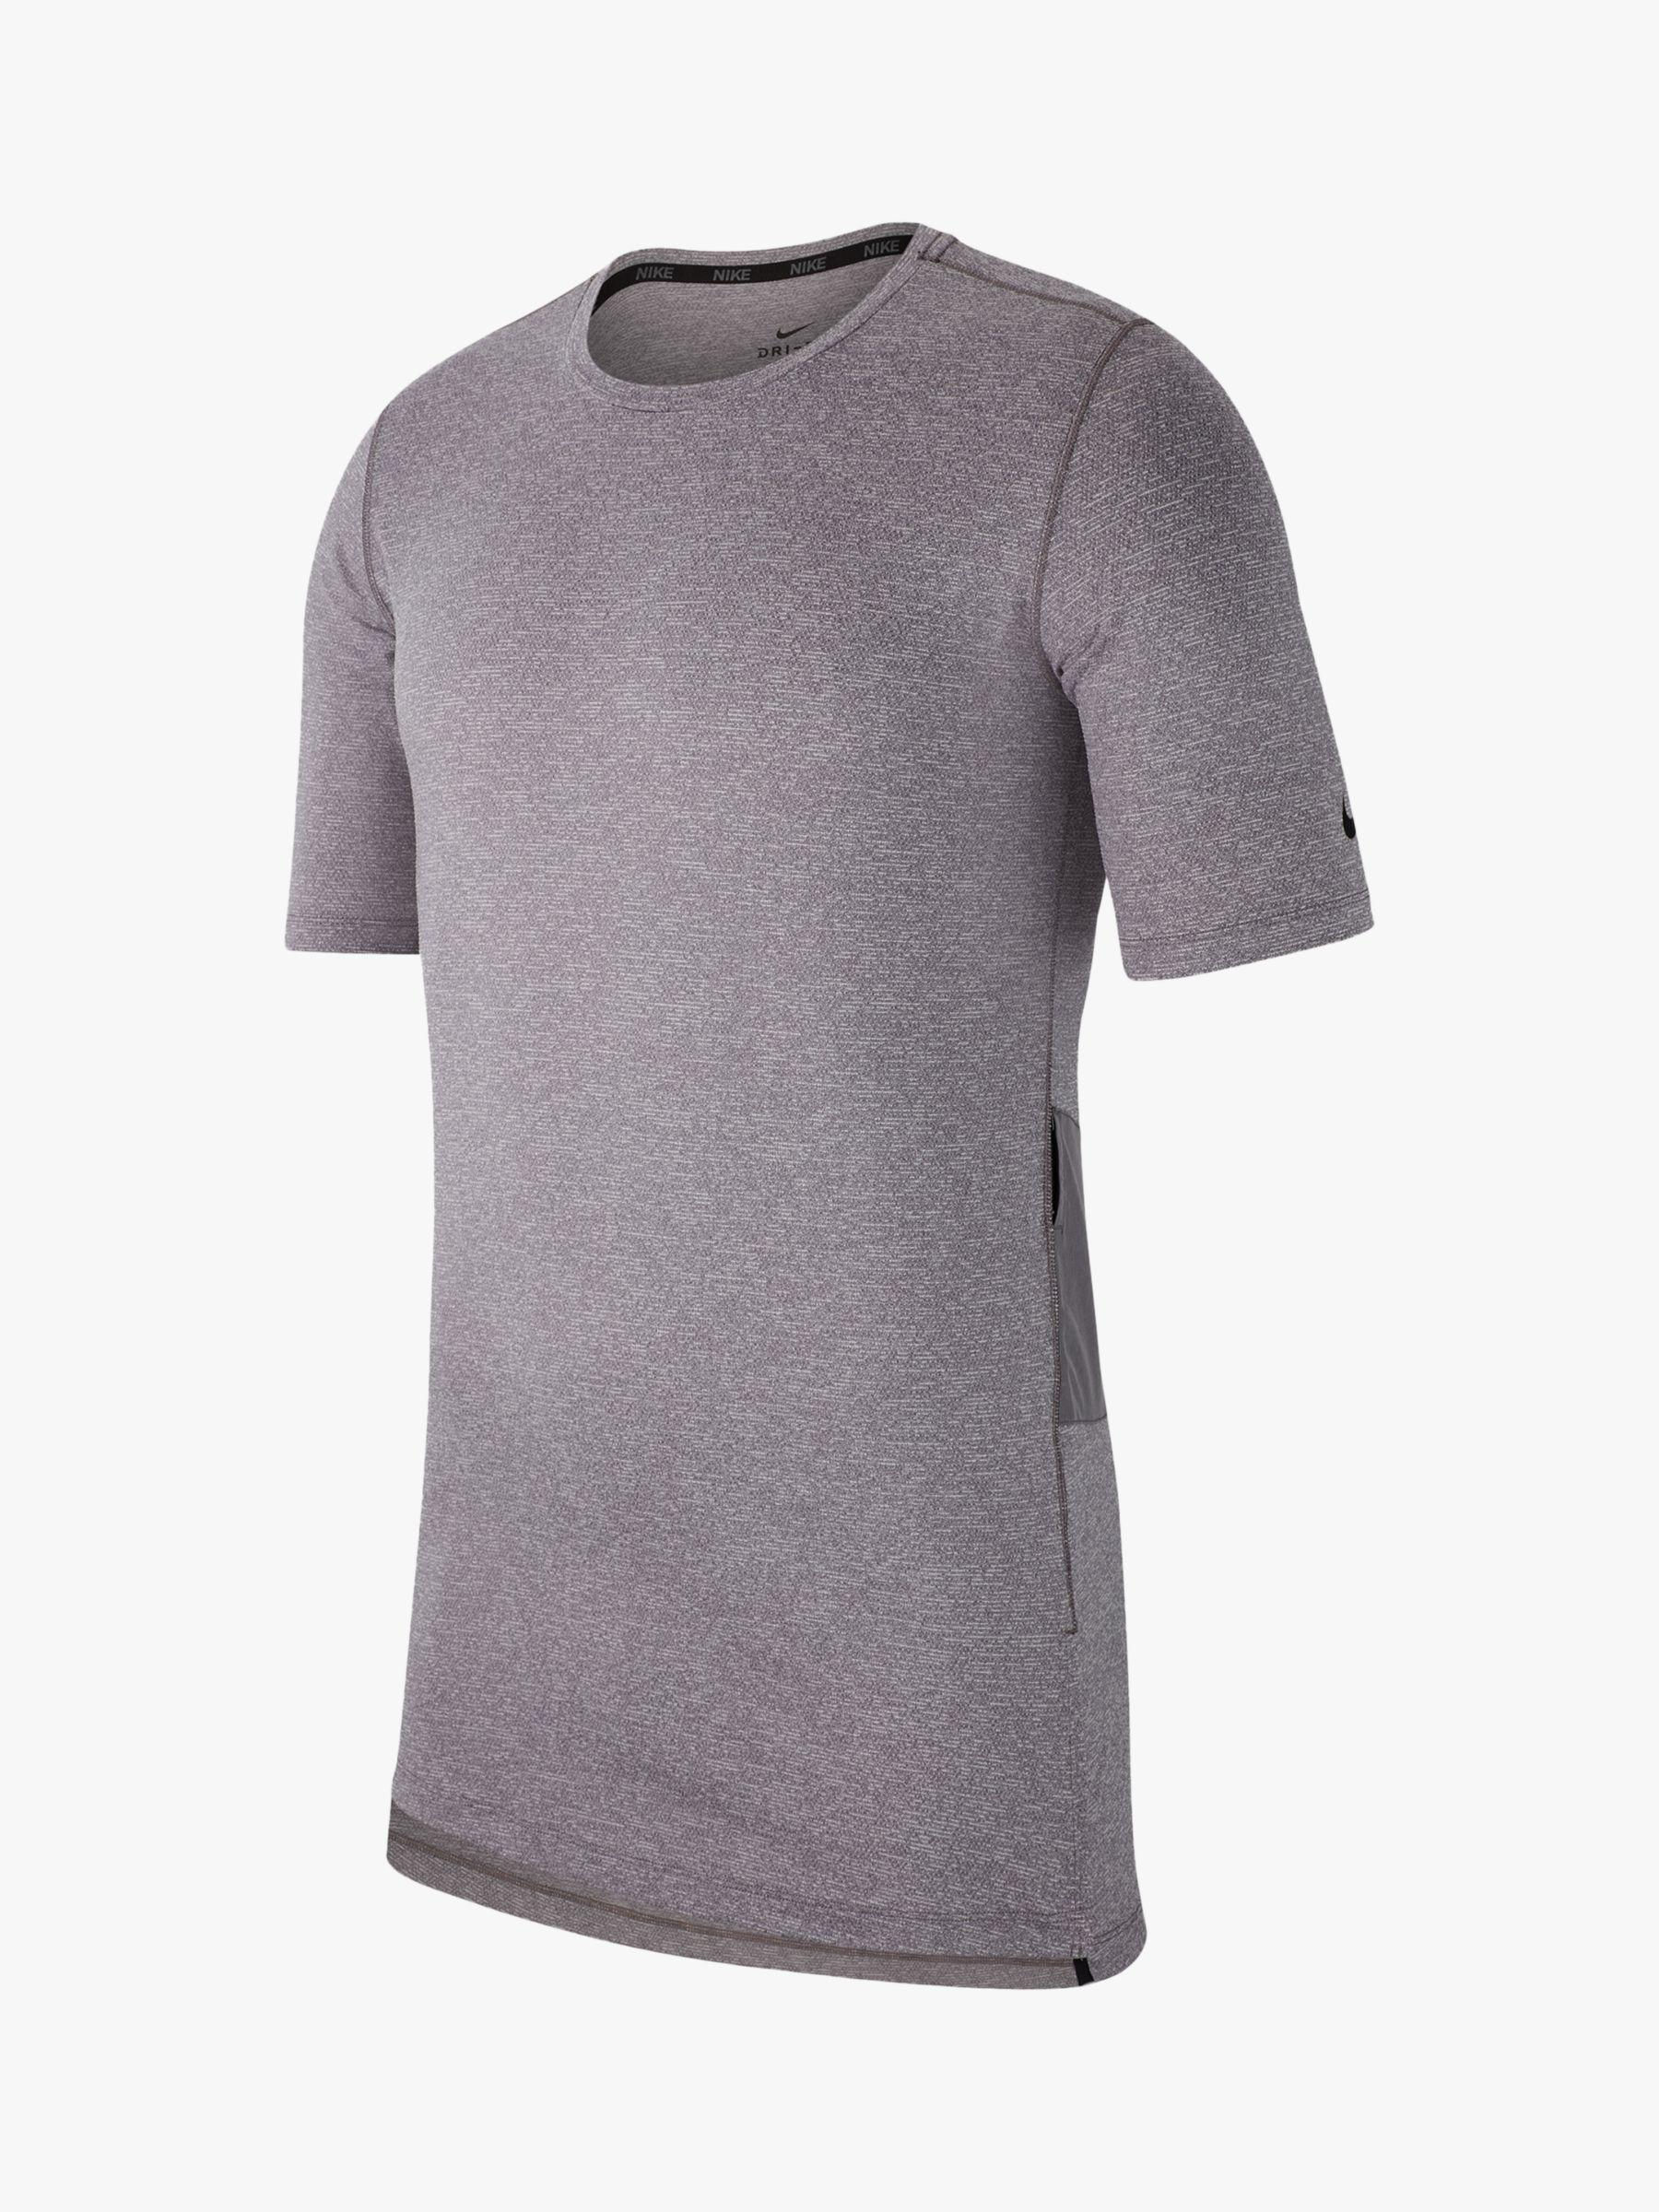 9a6a2ae5 Nike - Gray Short Sleeve Fitted Utility Training Top for Men - Lyst. View  fullscreen